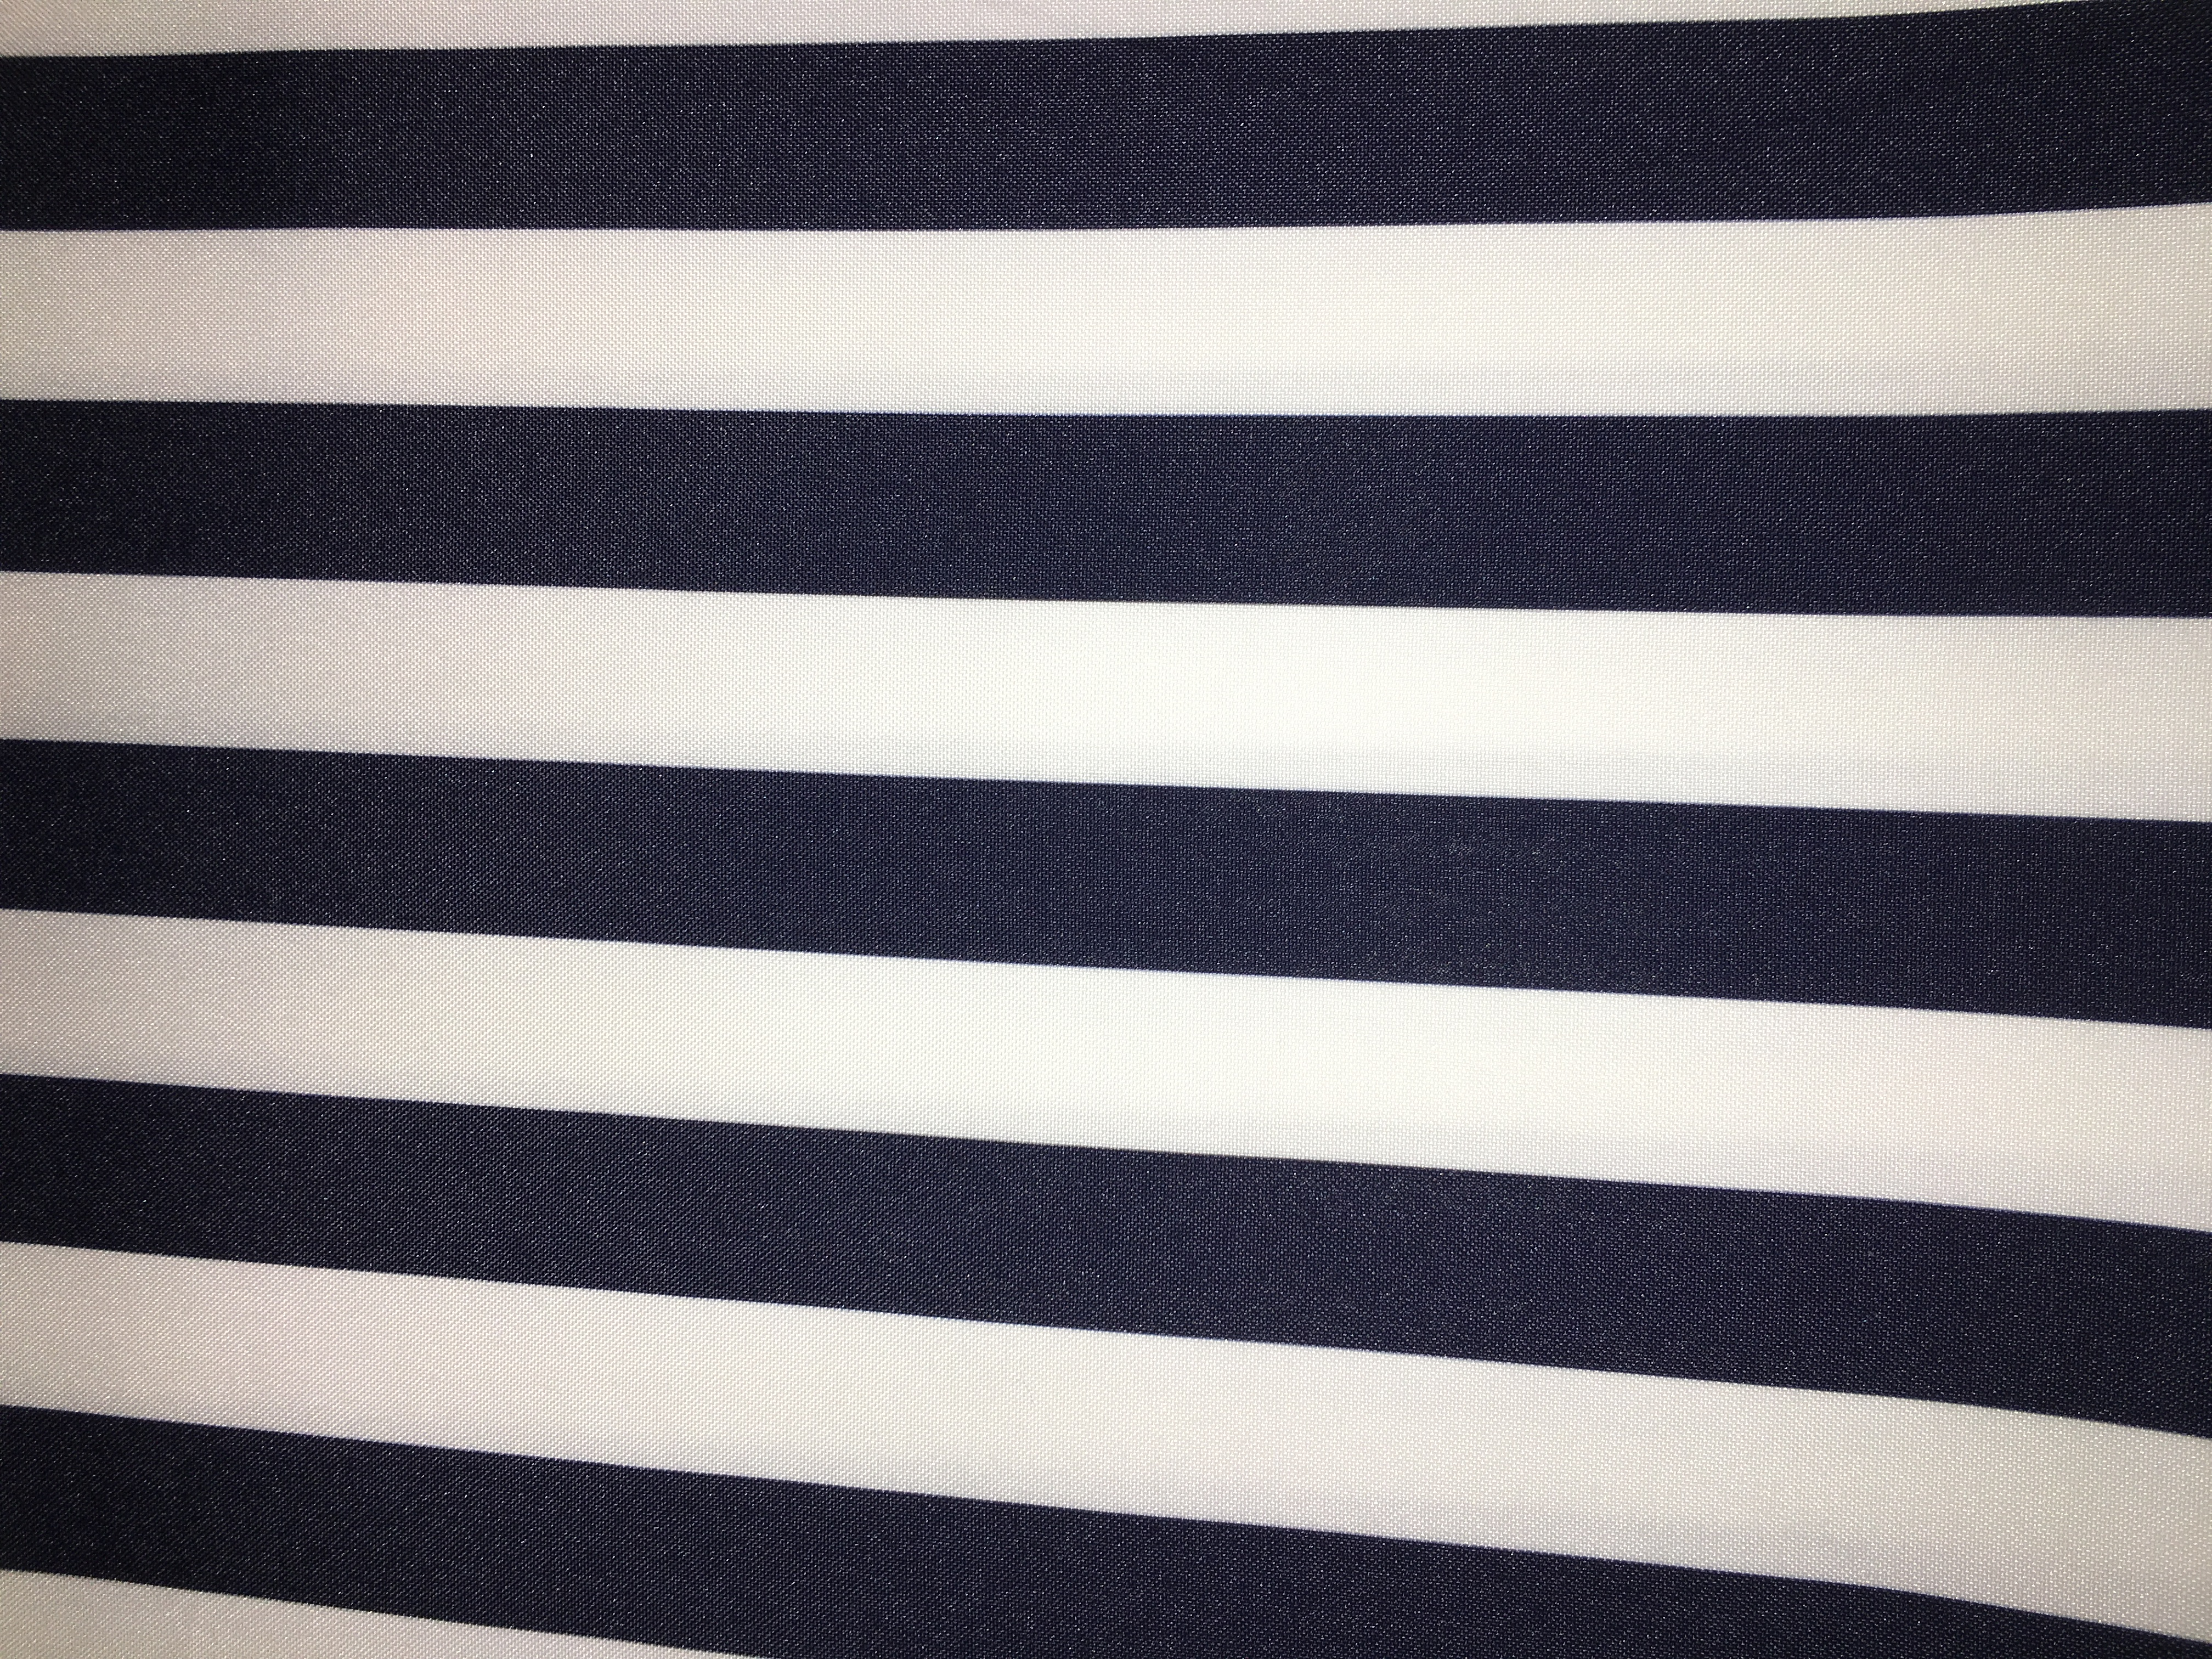 Awning Stripe Navy White Professional Party Rentals